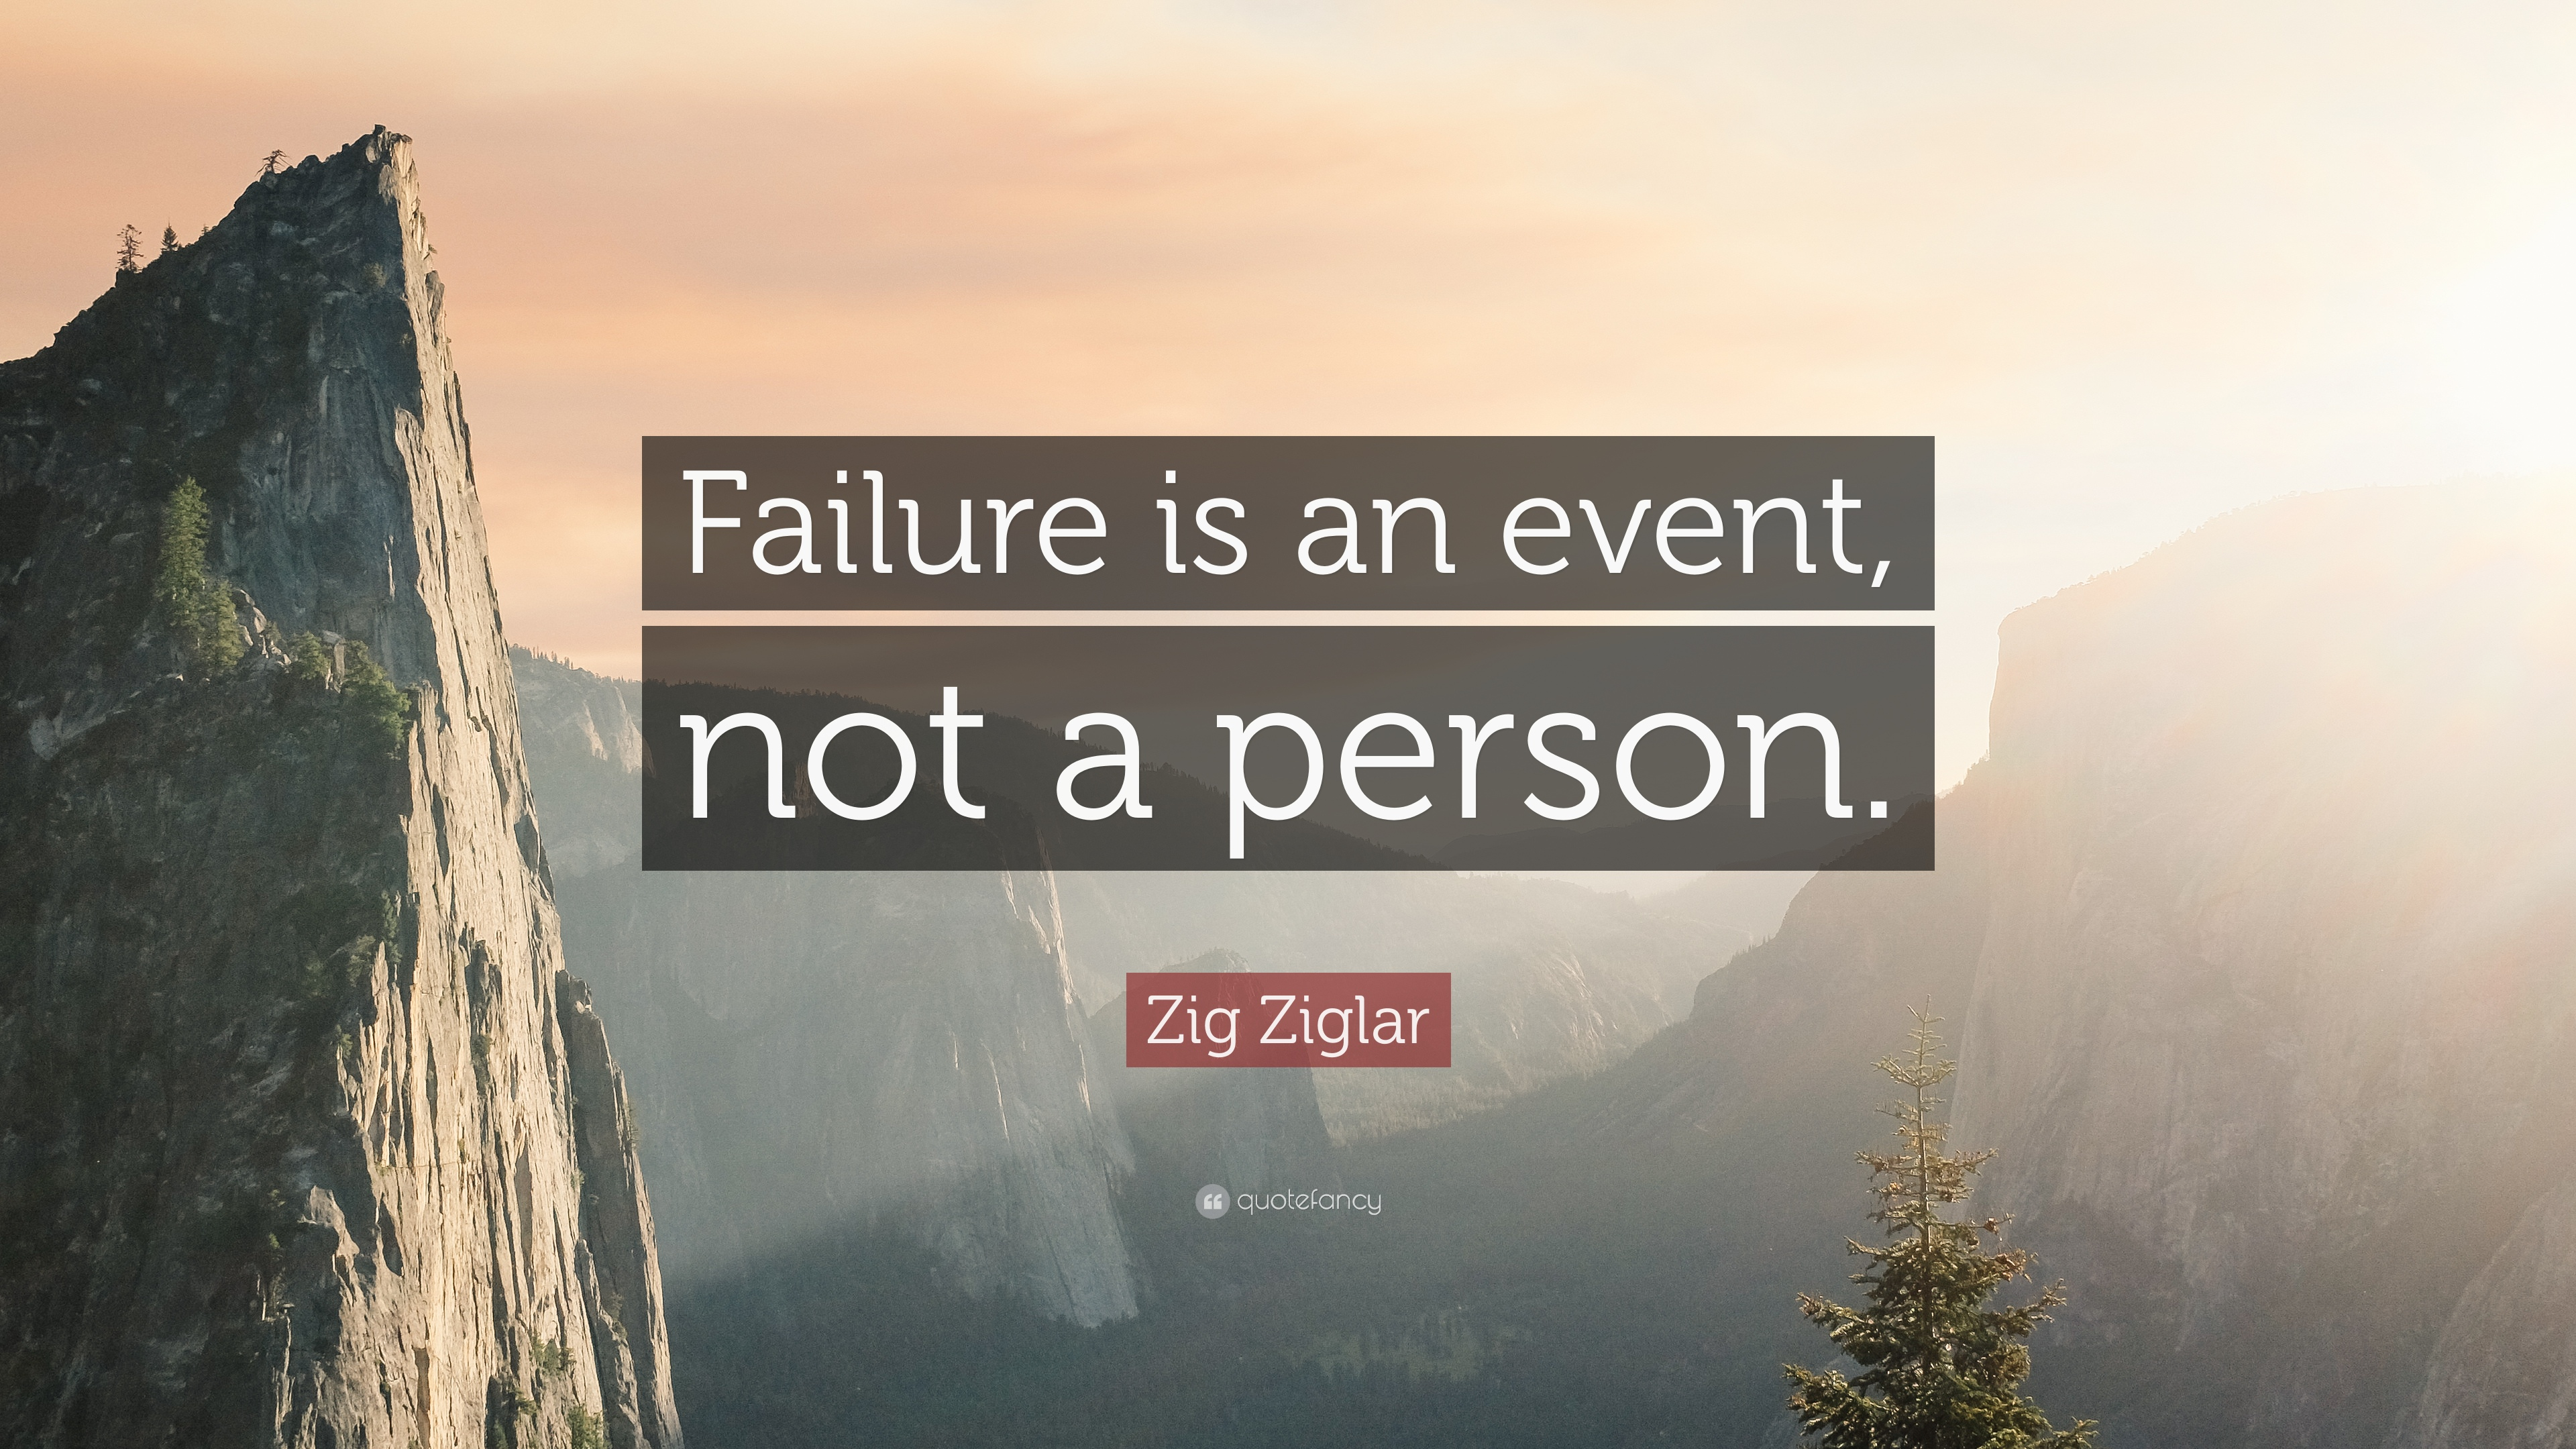 Zig Ziglar Failure Quote